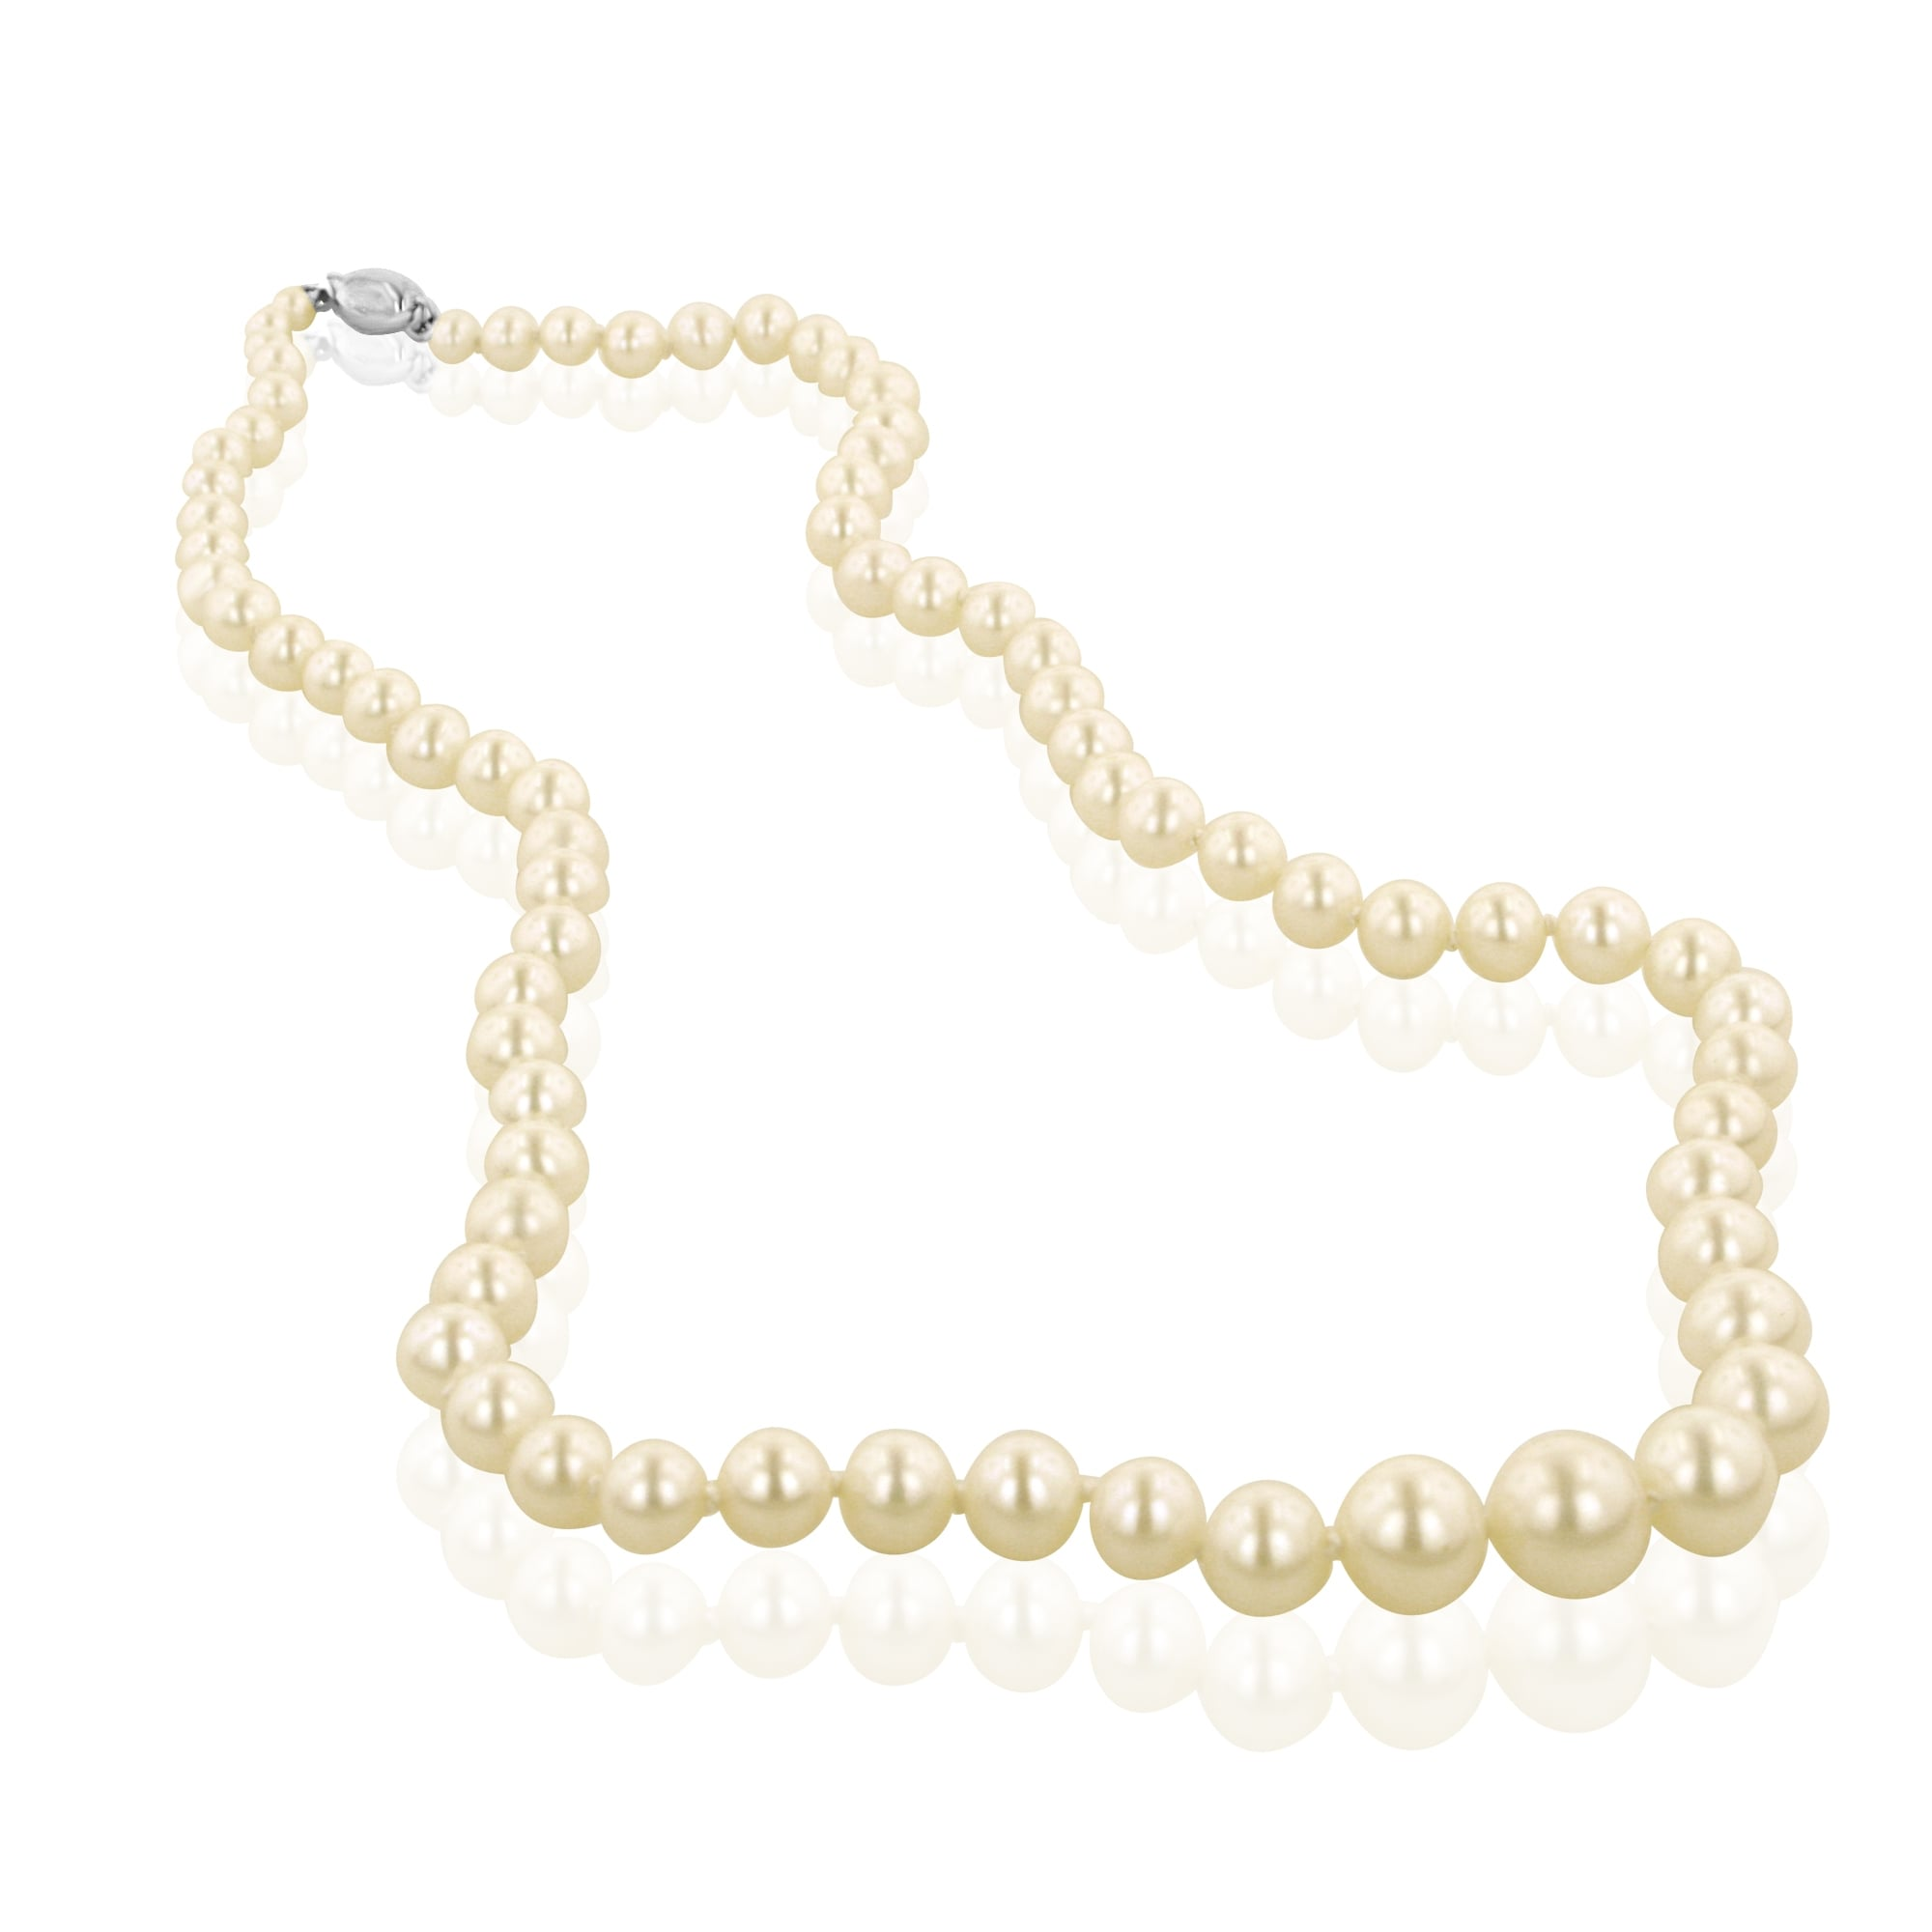 claire faux graduated s jewellery pearl necklace